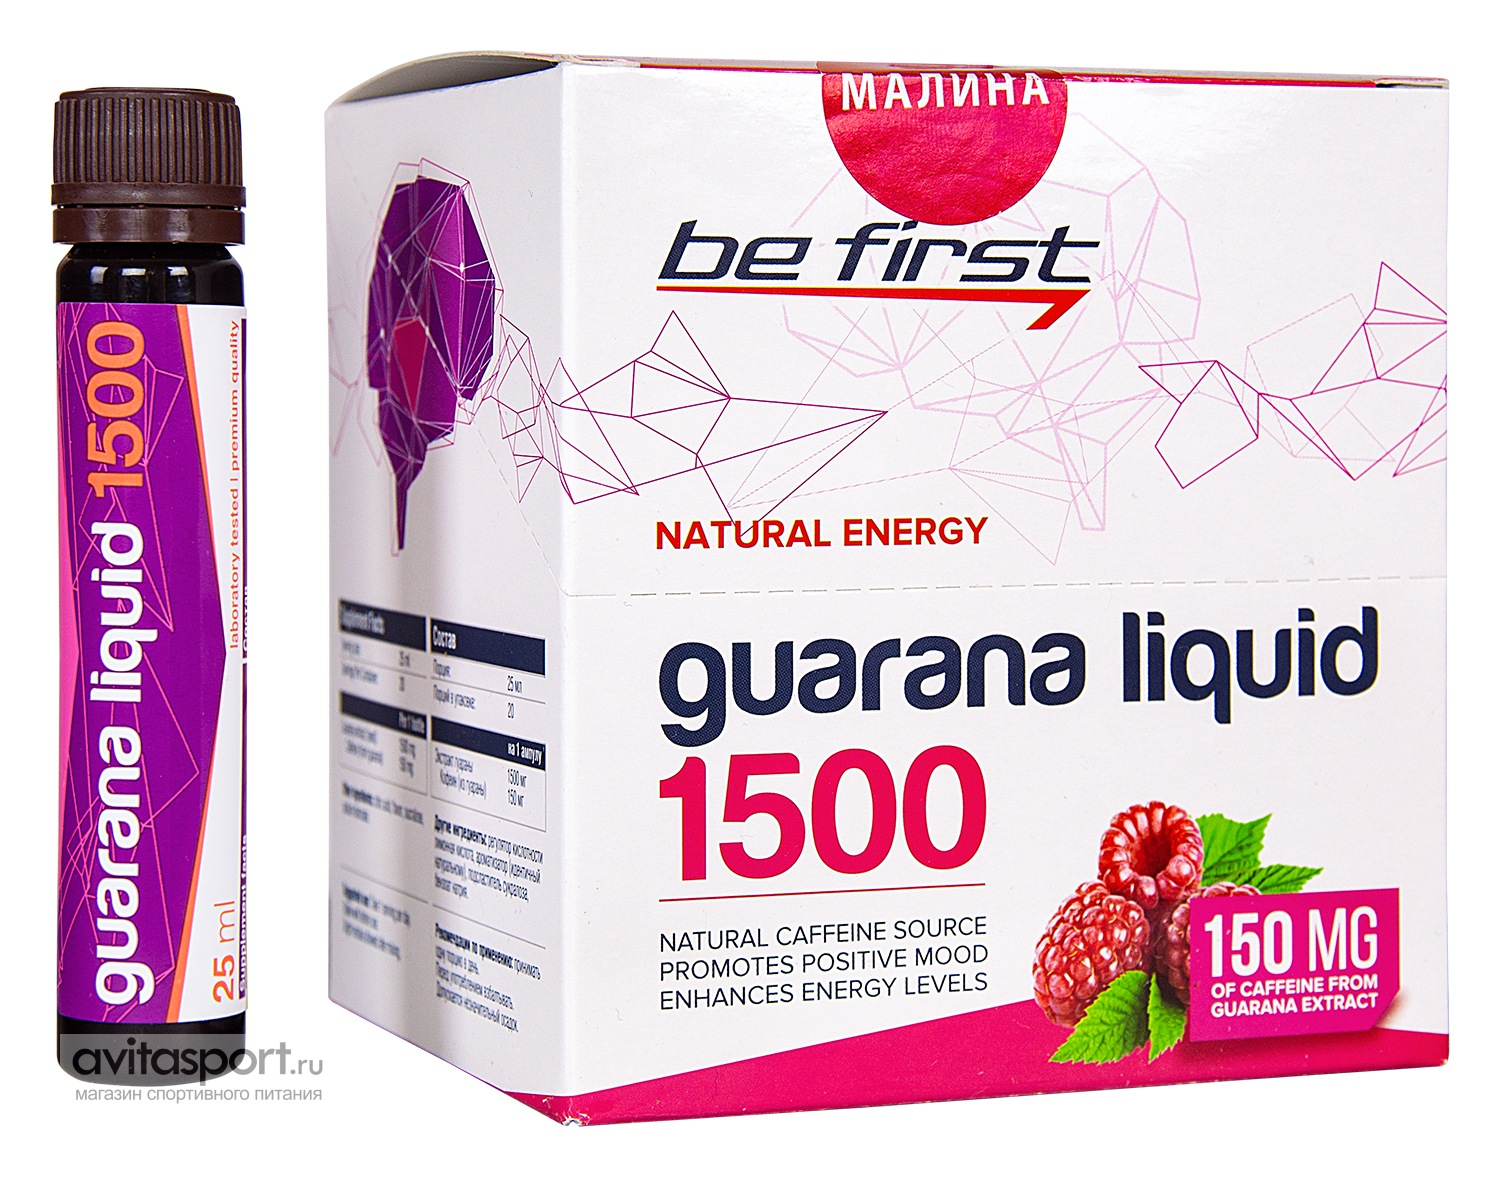 Be First Guarana Liquid 1500 20 ампул * 25 мл